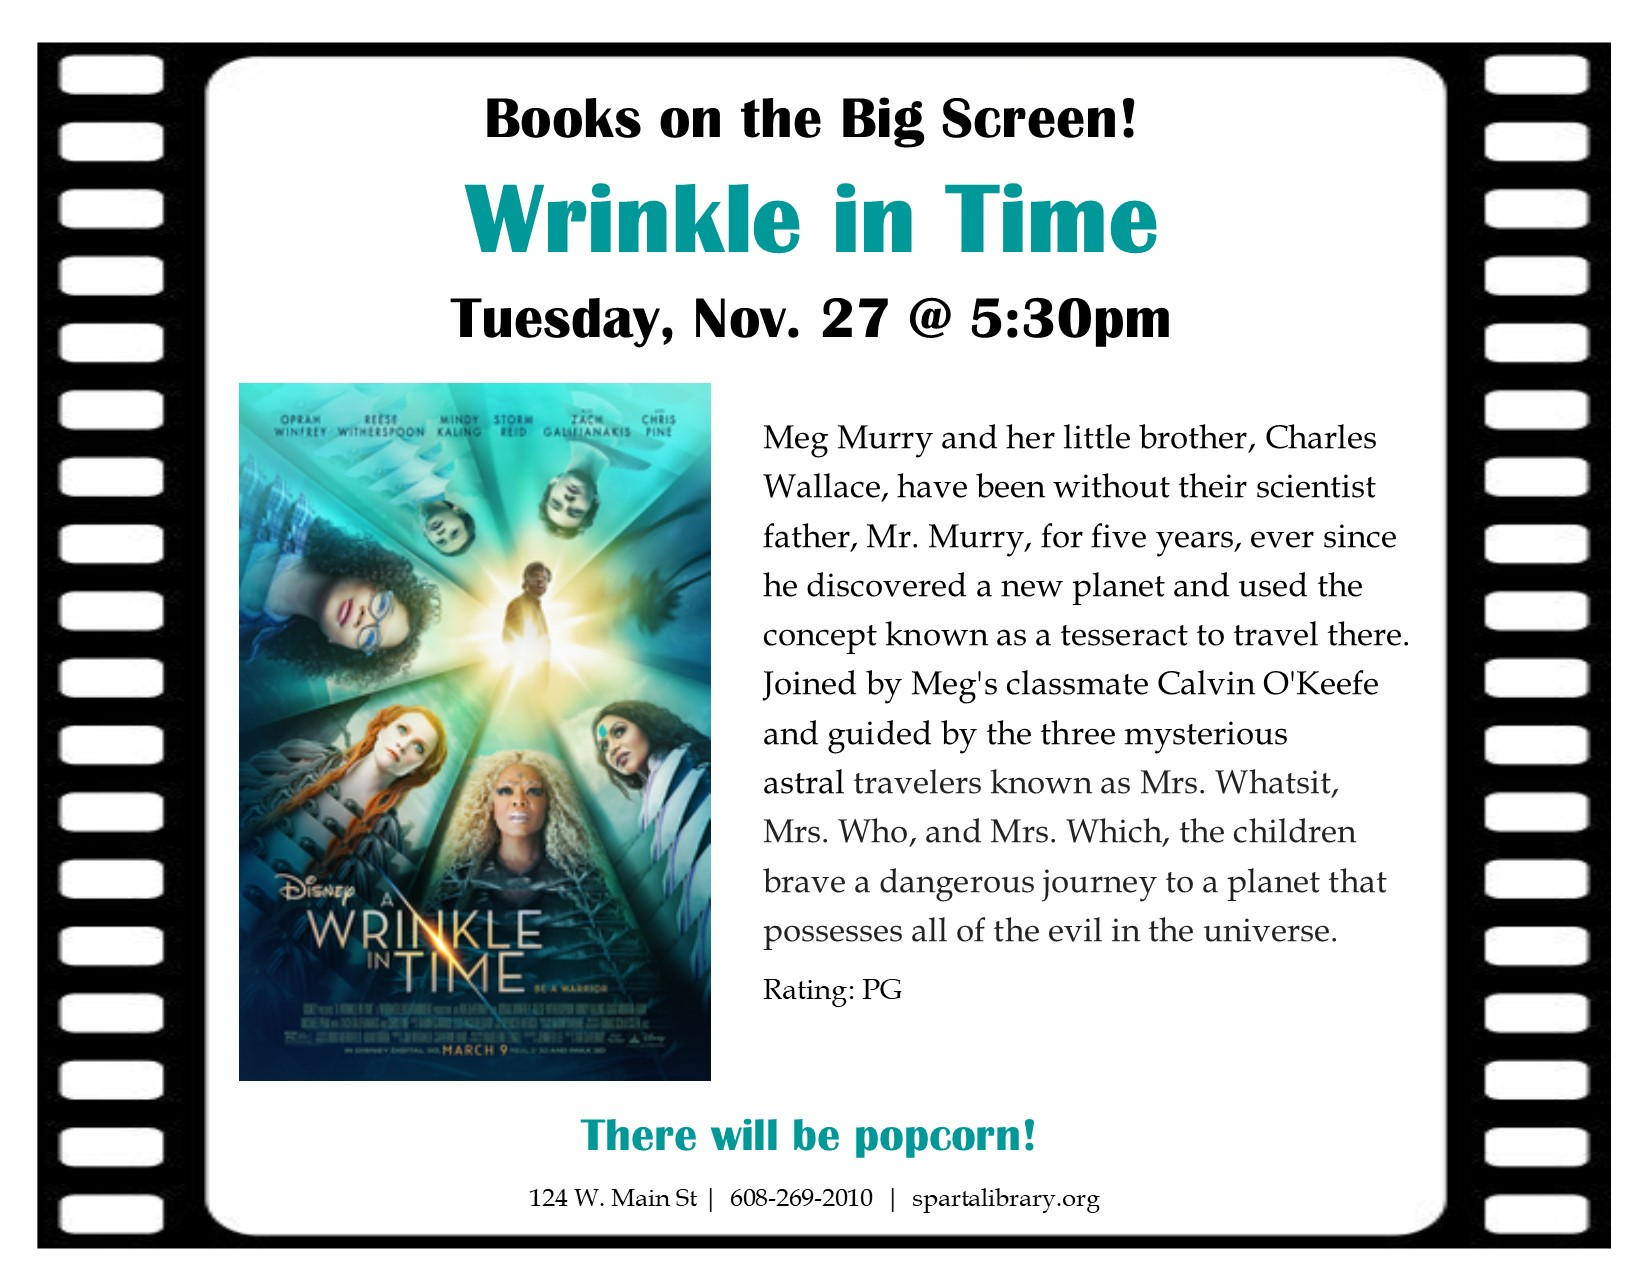 BotBS Wrinkle in Time Poster